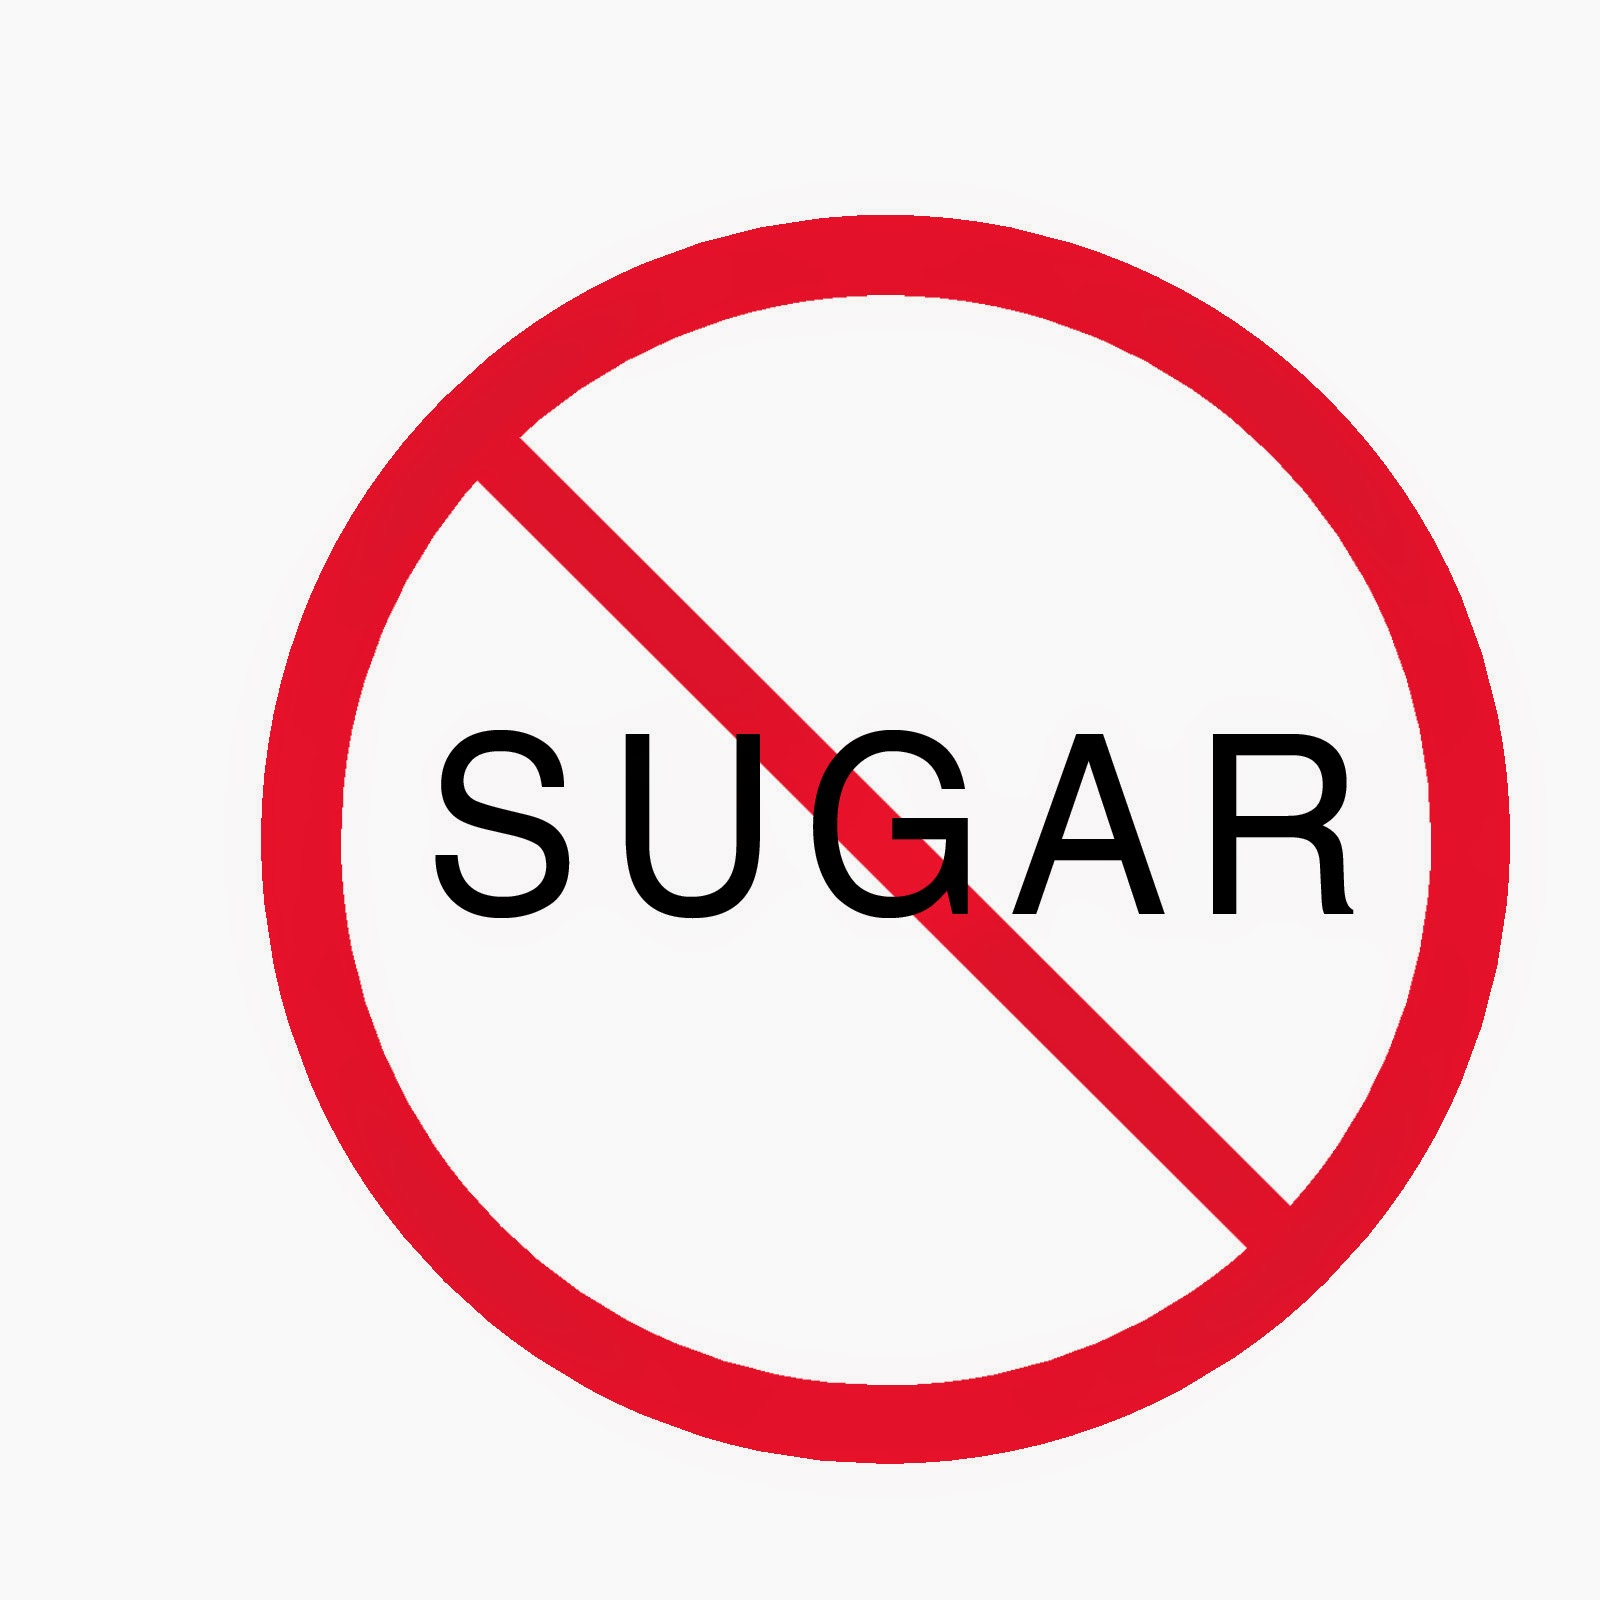 Avoid sugar especially the refined one.